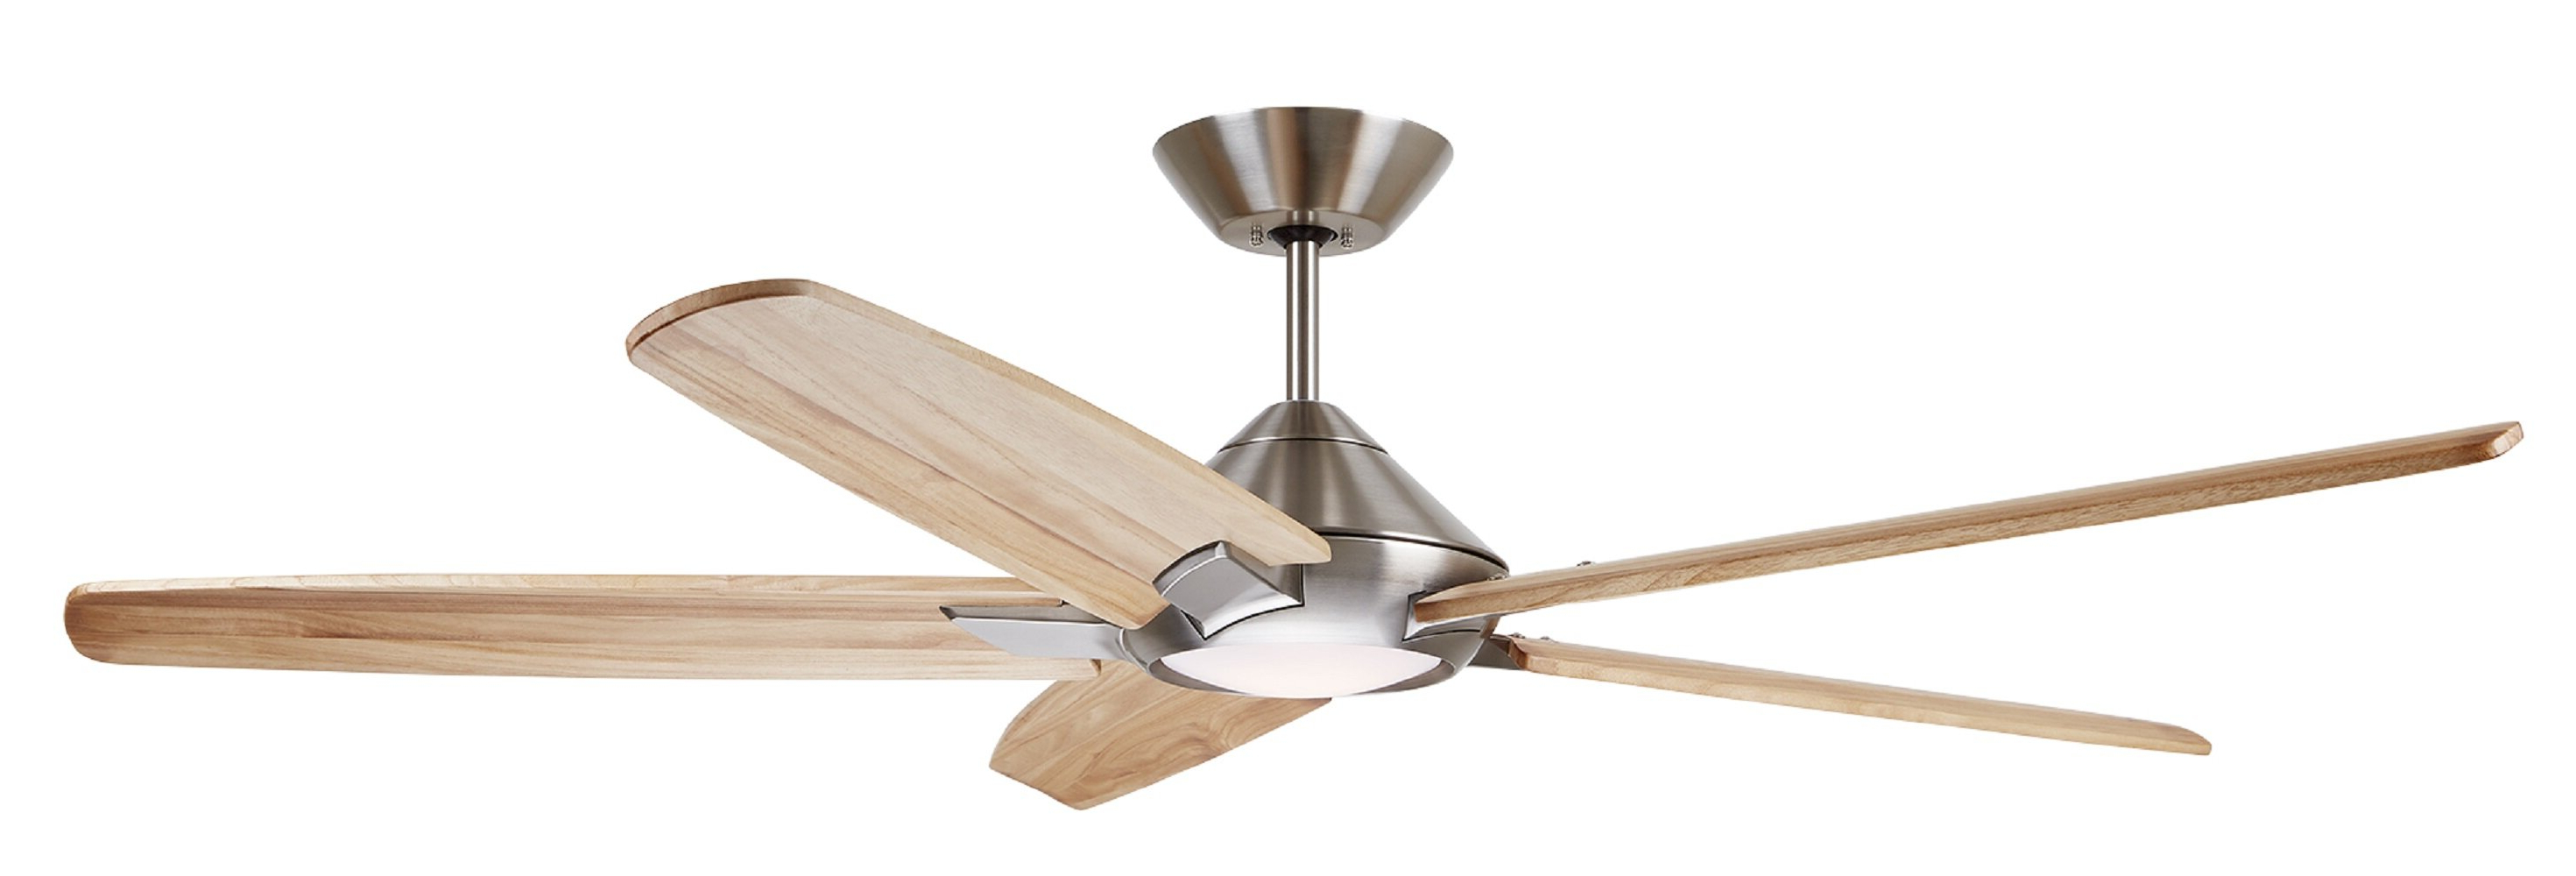 "Preferred 60"" Liv 5 Blade Led Ceiling Fan With Remote, Light Kit Included Pertaining To Raptor 5 Blade Ceiling Fans (View 10 of 20)"